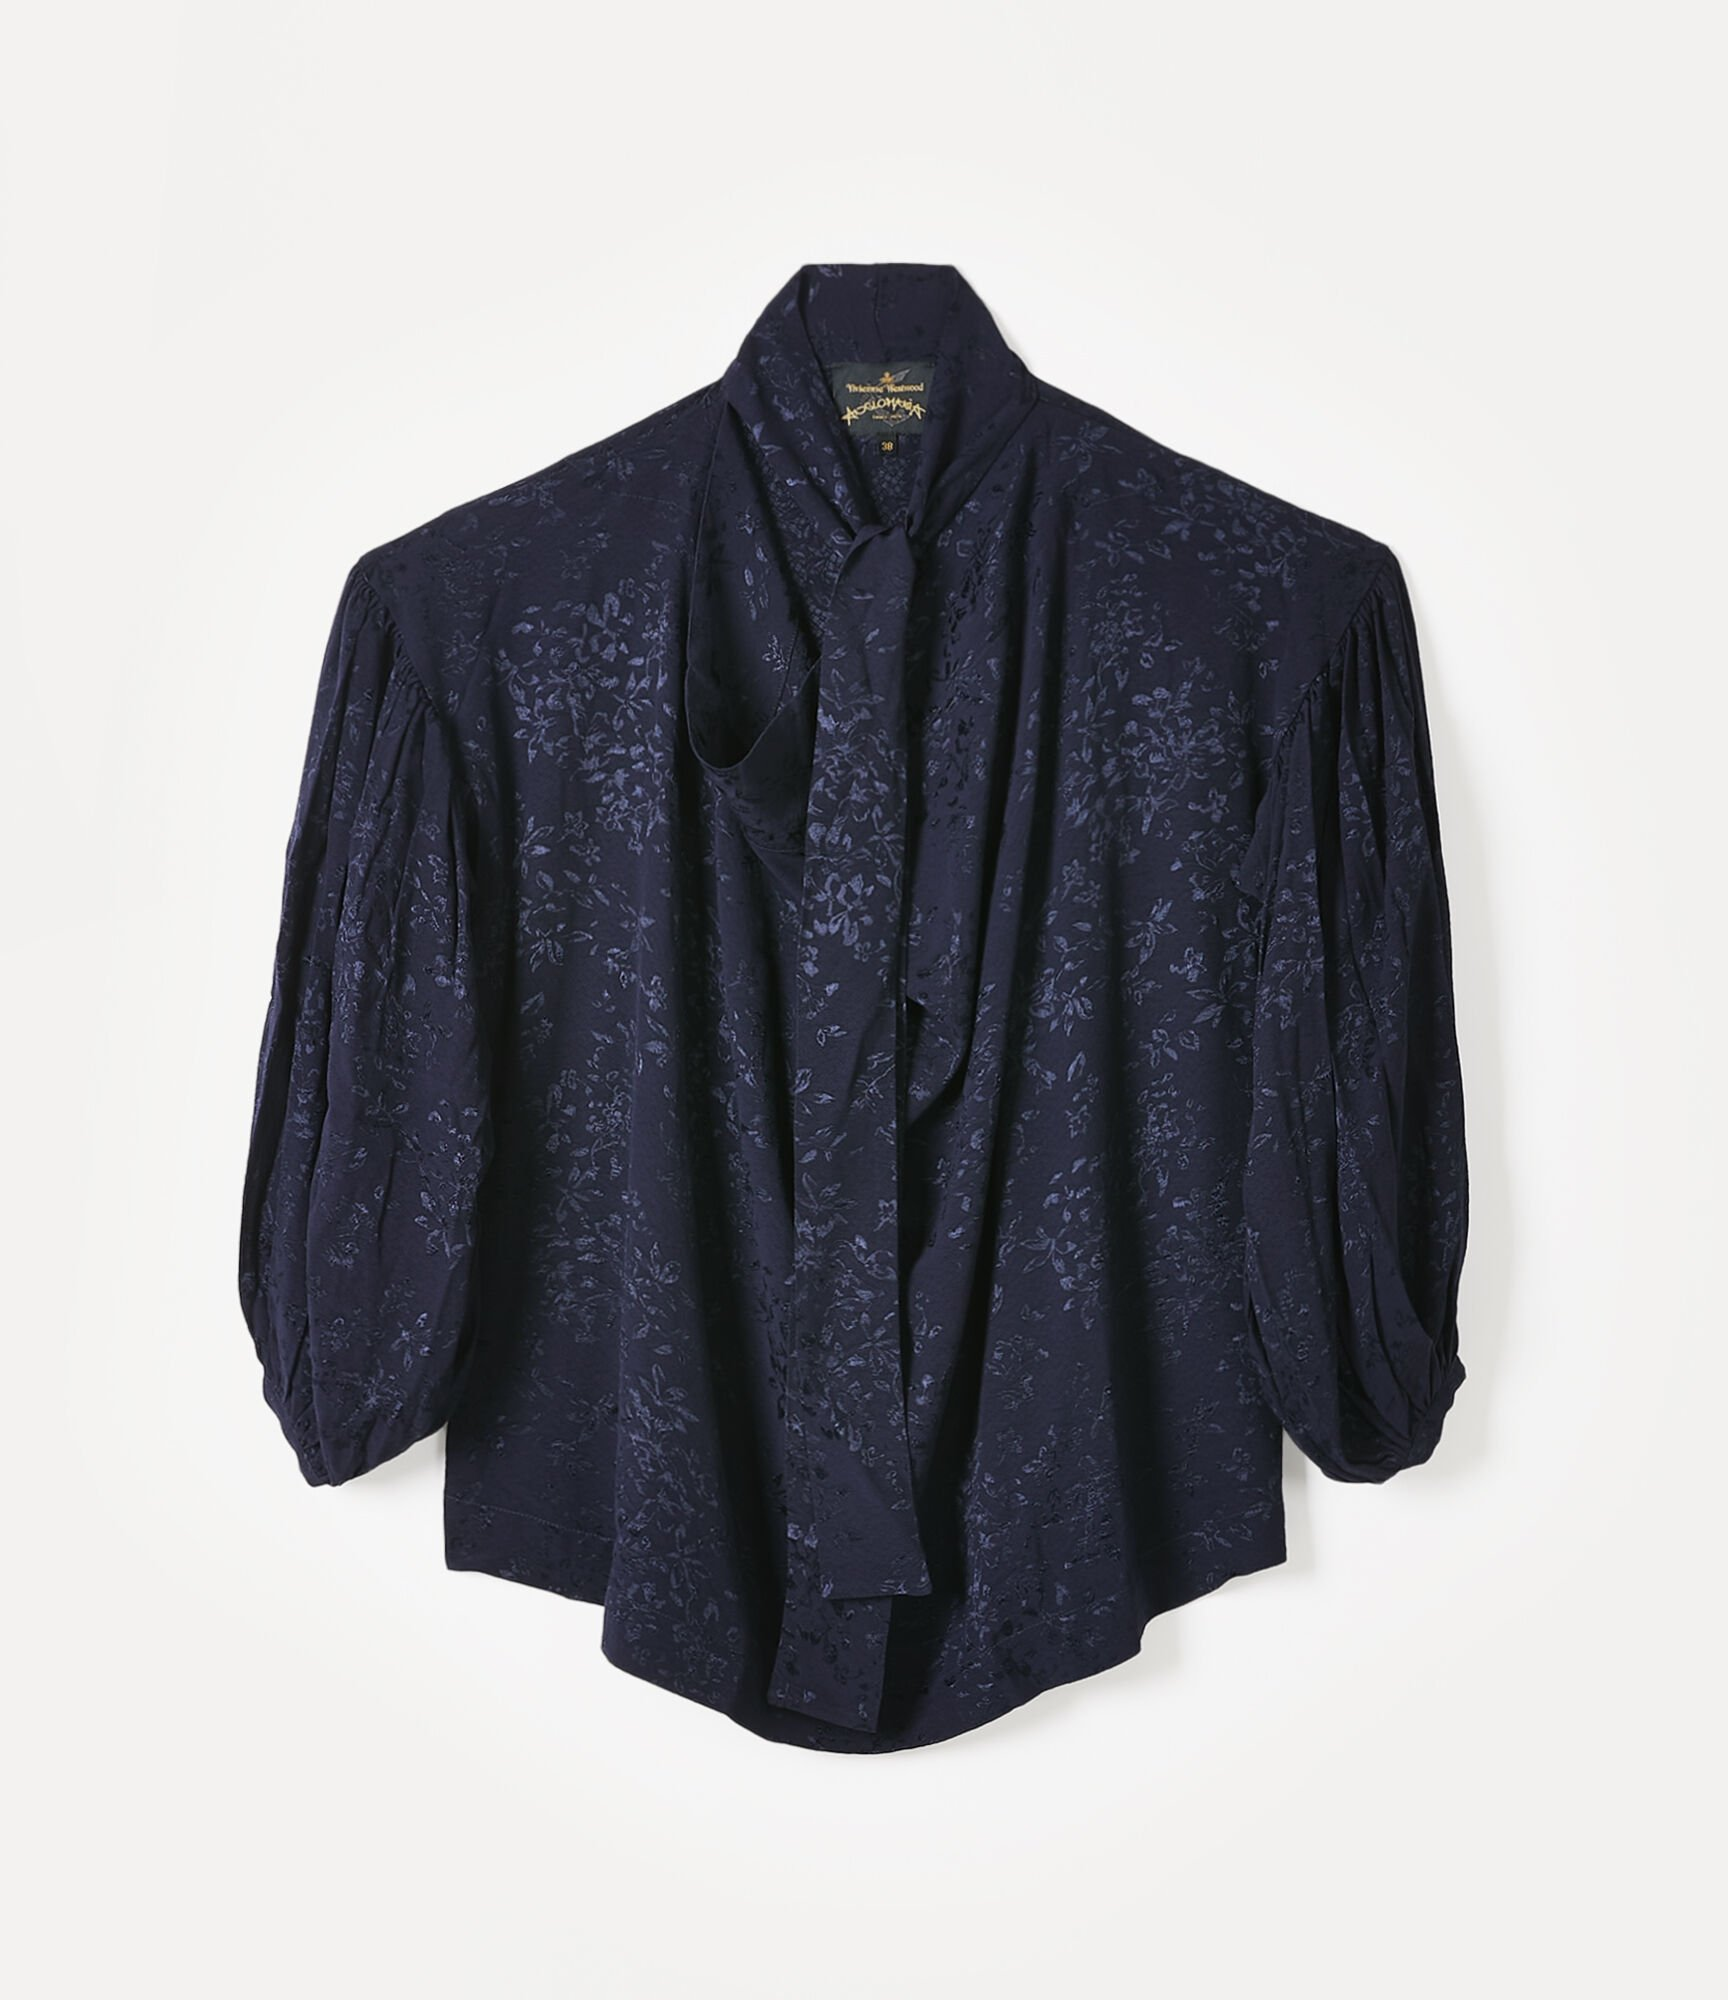 Vivienne Westwood New Garret Blouse Navy